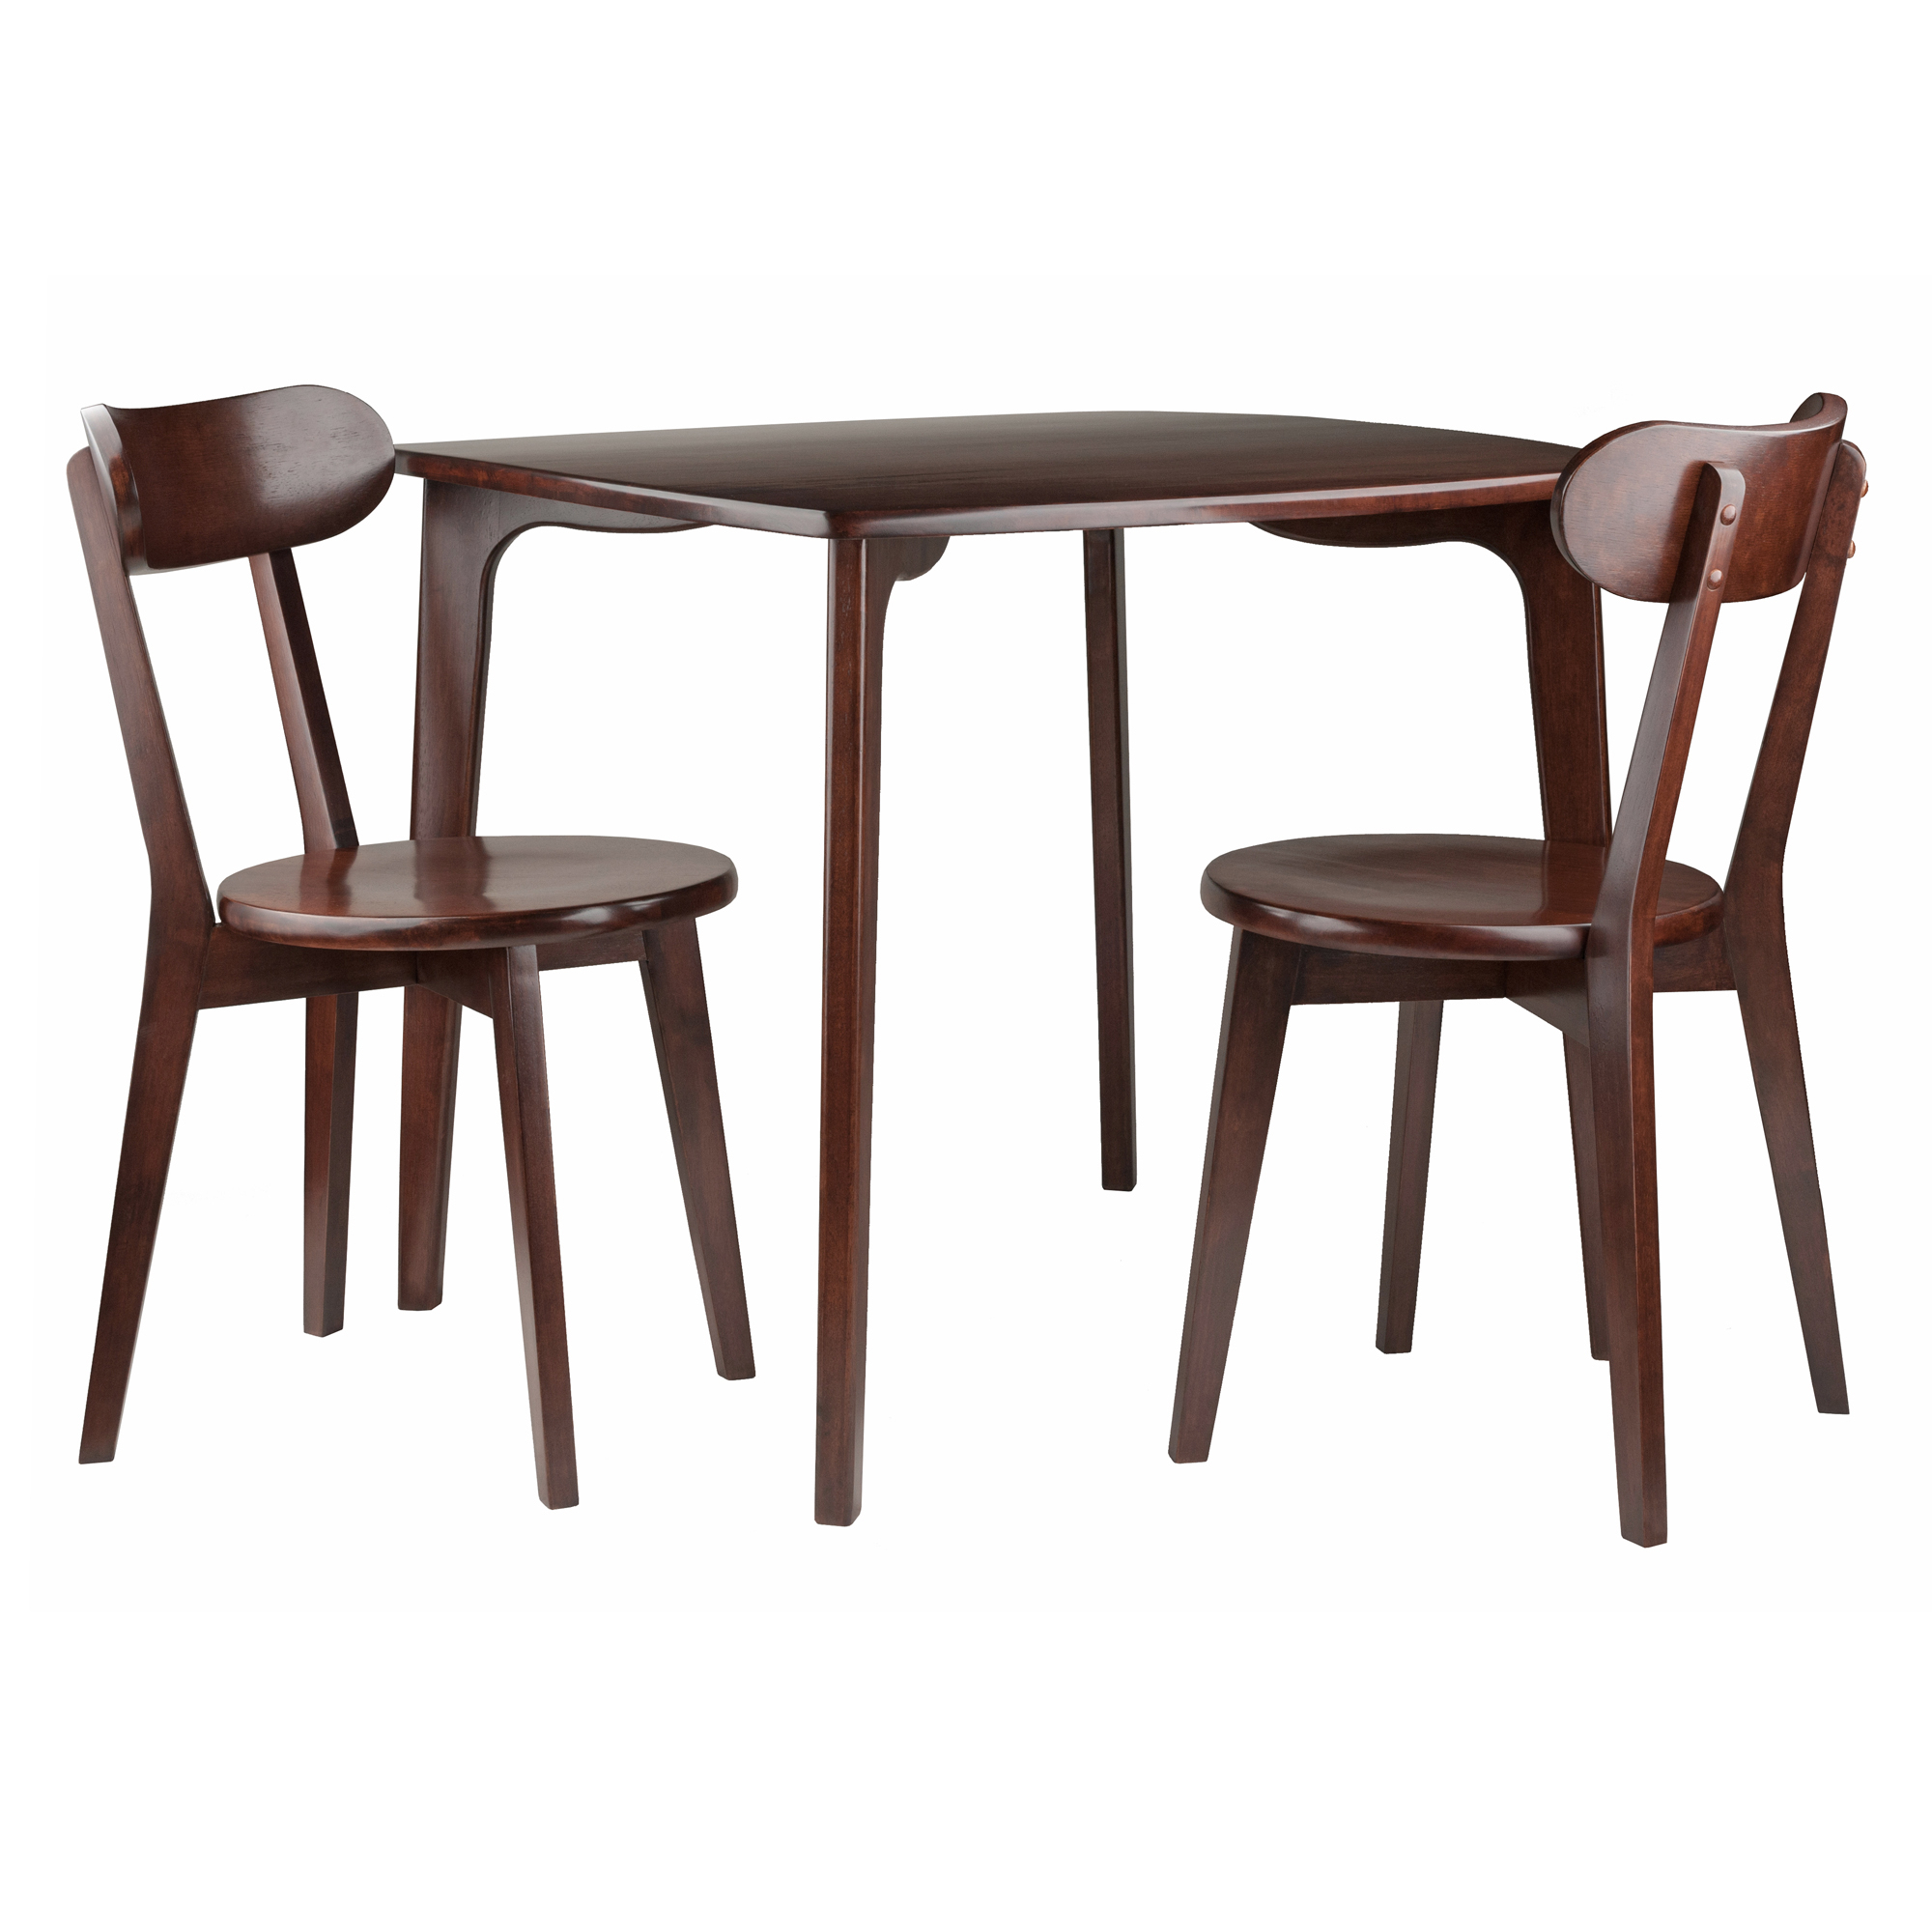 Winsome Wood Pauline 3 Piece Dining Table With Chairs Set, Walnut Throughout Well Known Winsome 3 Piece Counter Height Dining Sets (View 25 of 25)